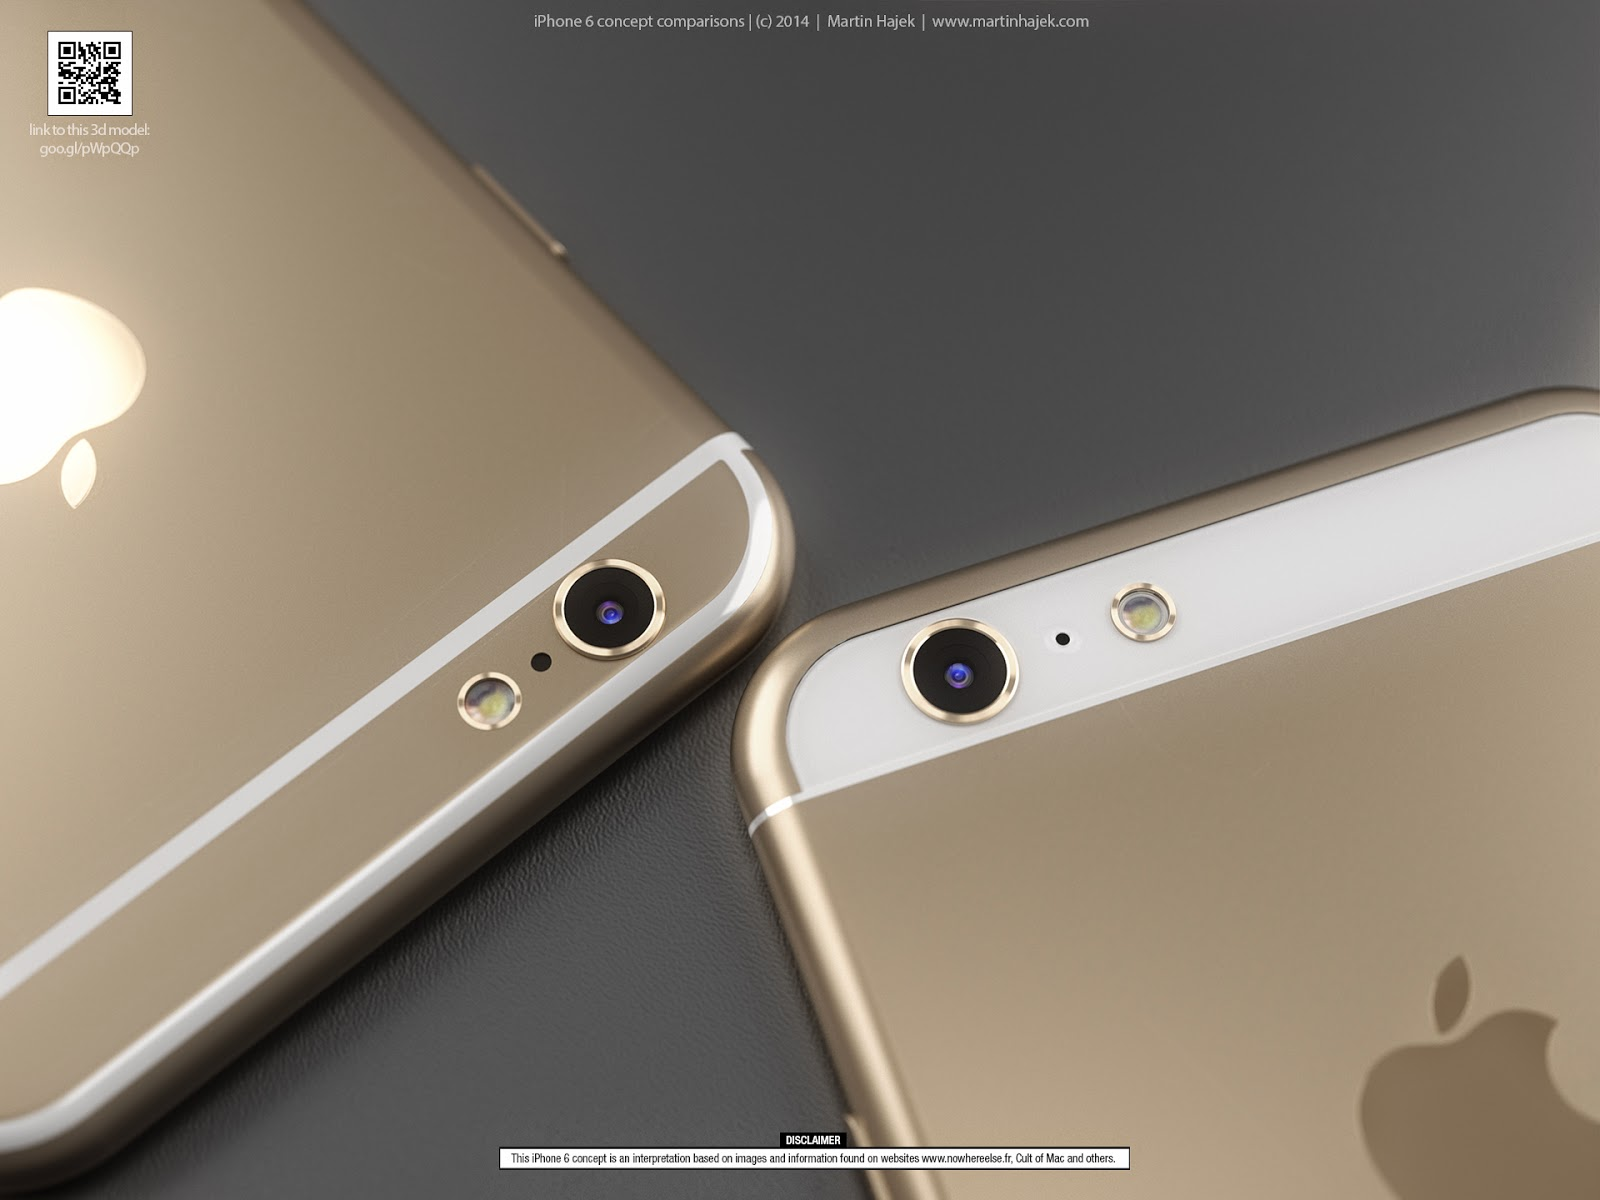 55 Incher Is IPhone 6 Plus 47 Inch Model Called